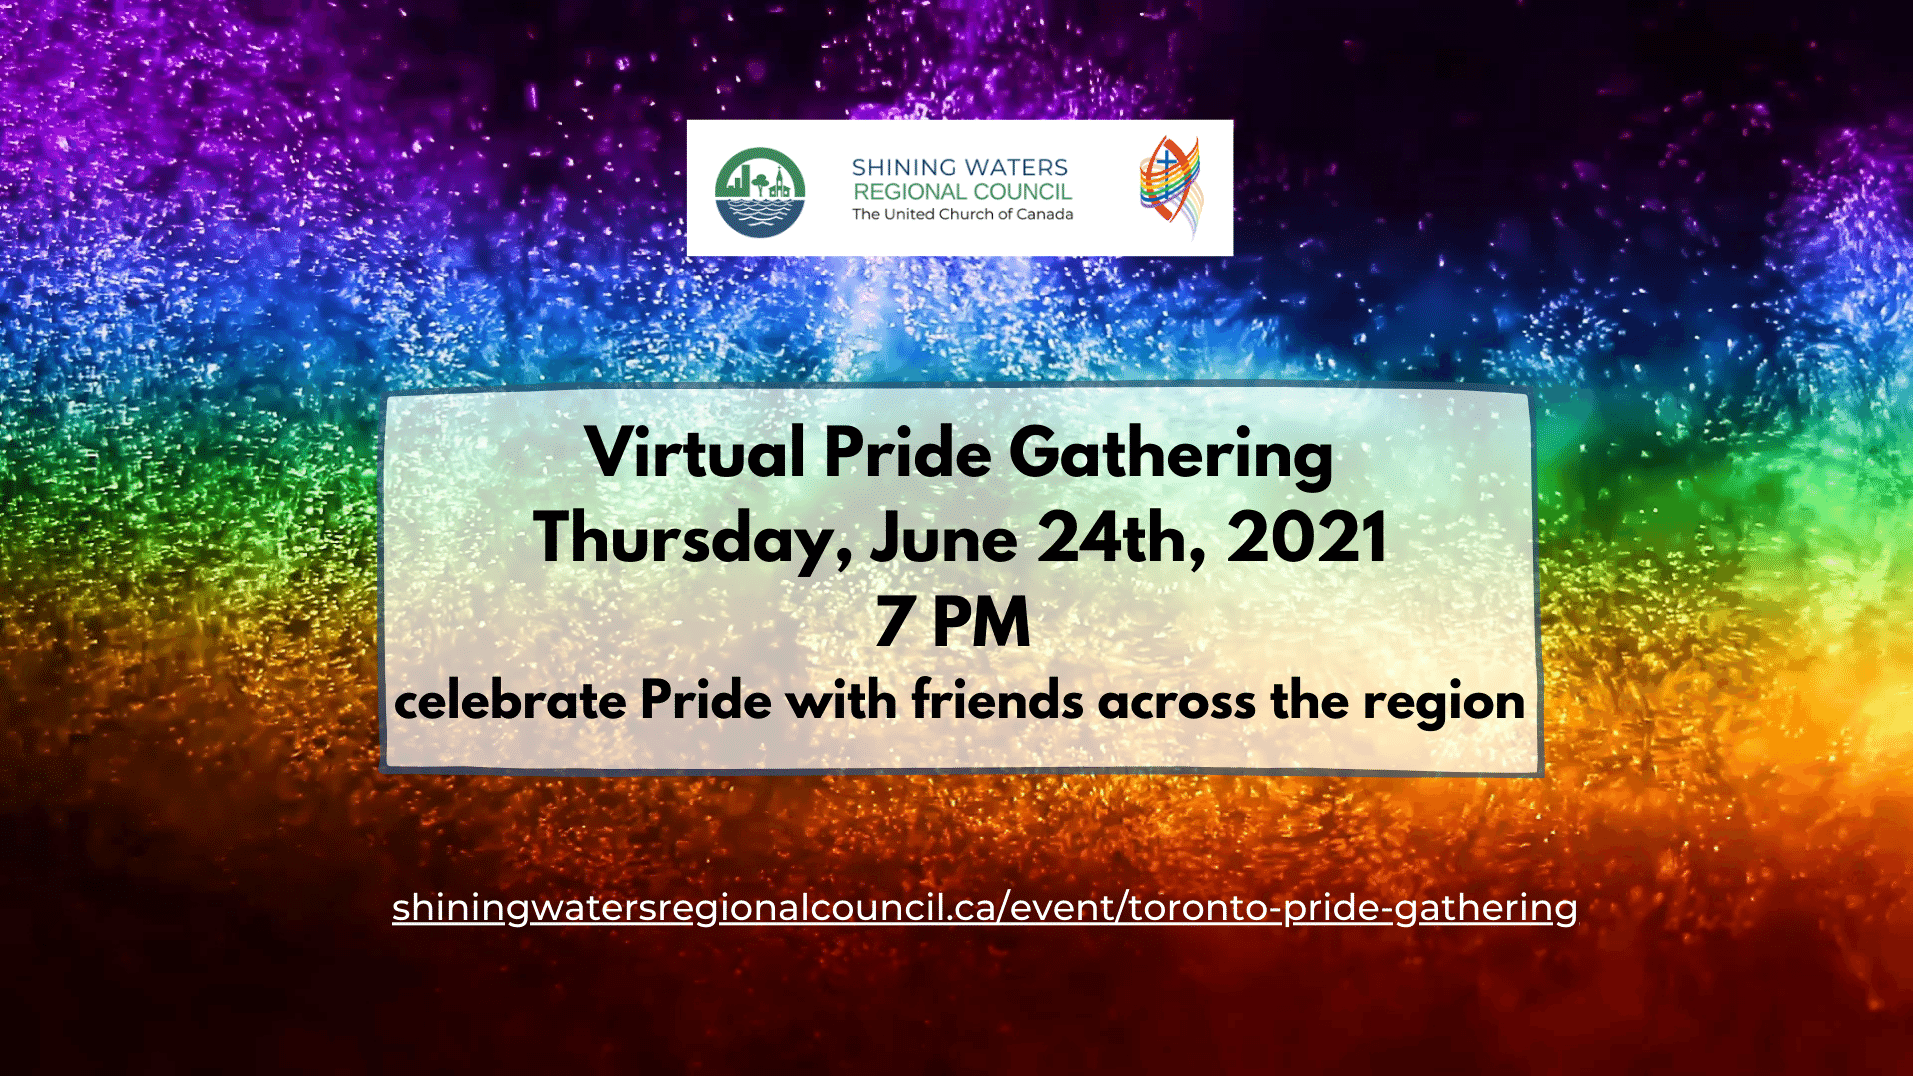 June 24 at 7 pm with rainbow fireworks background